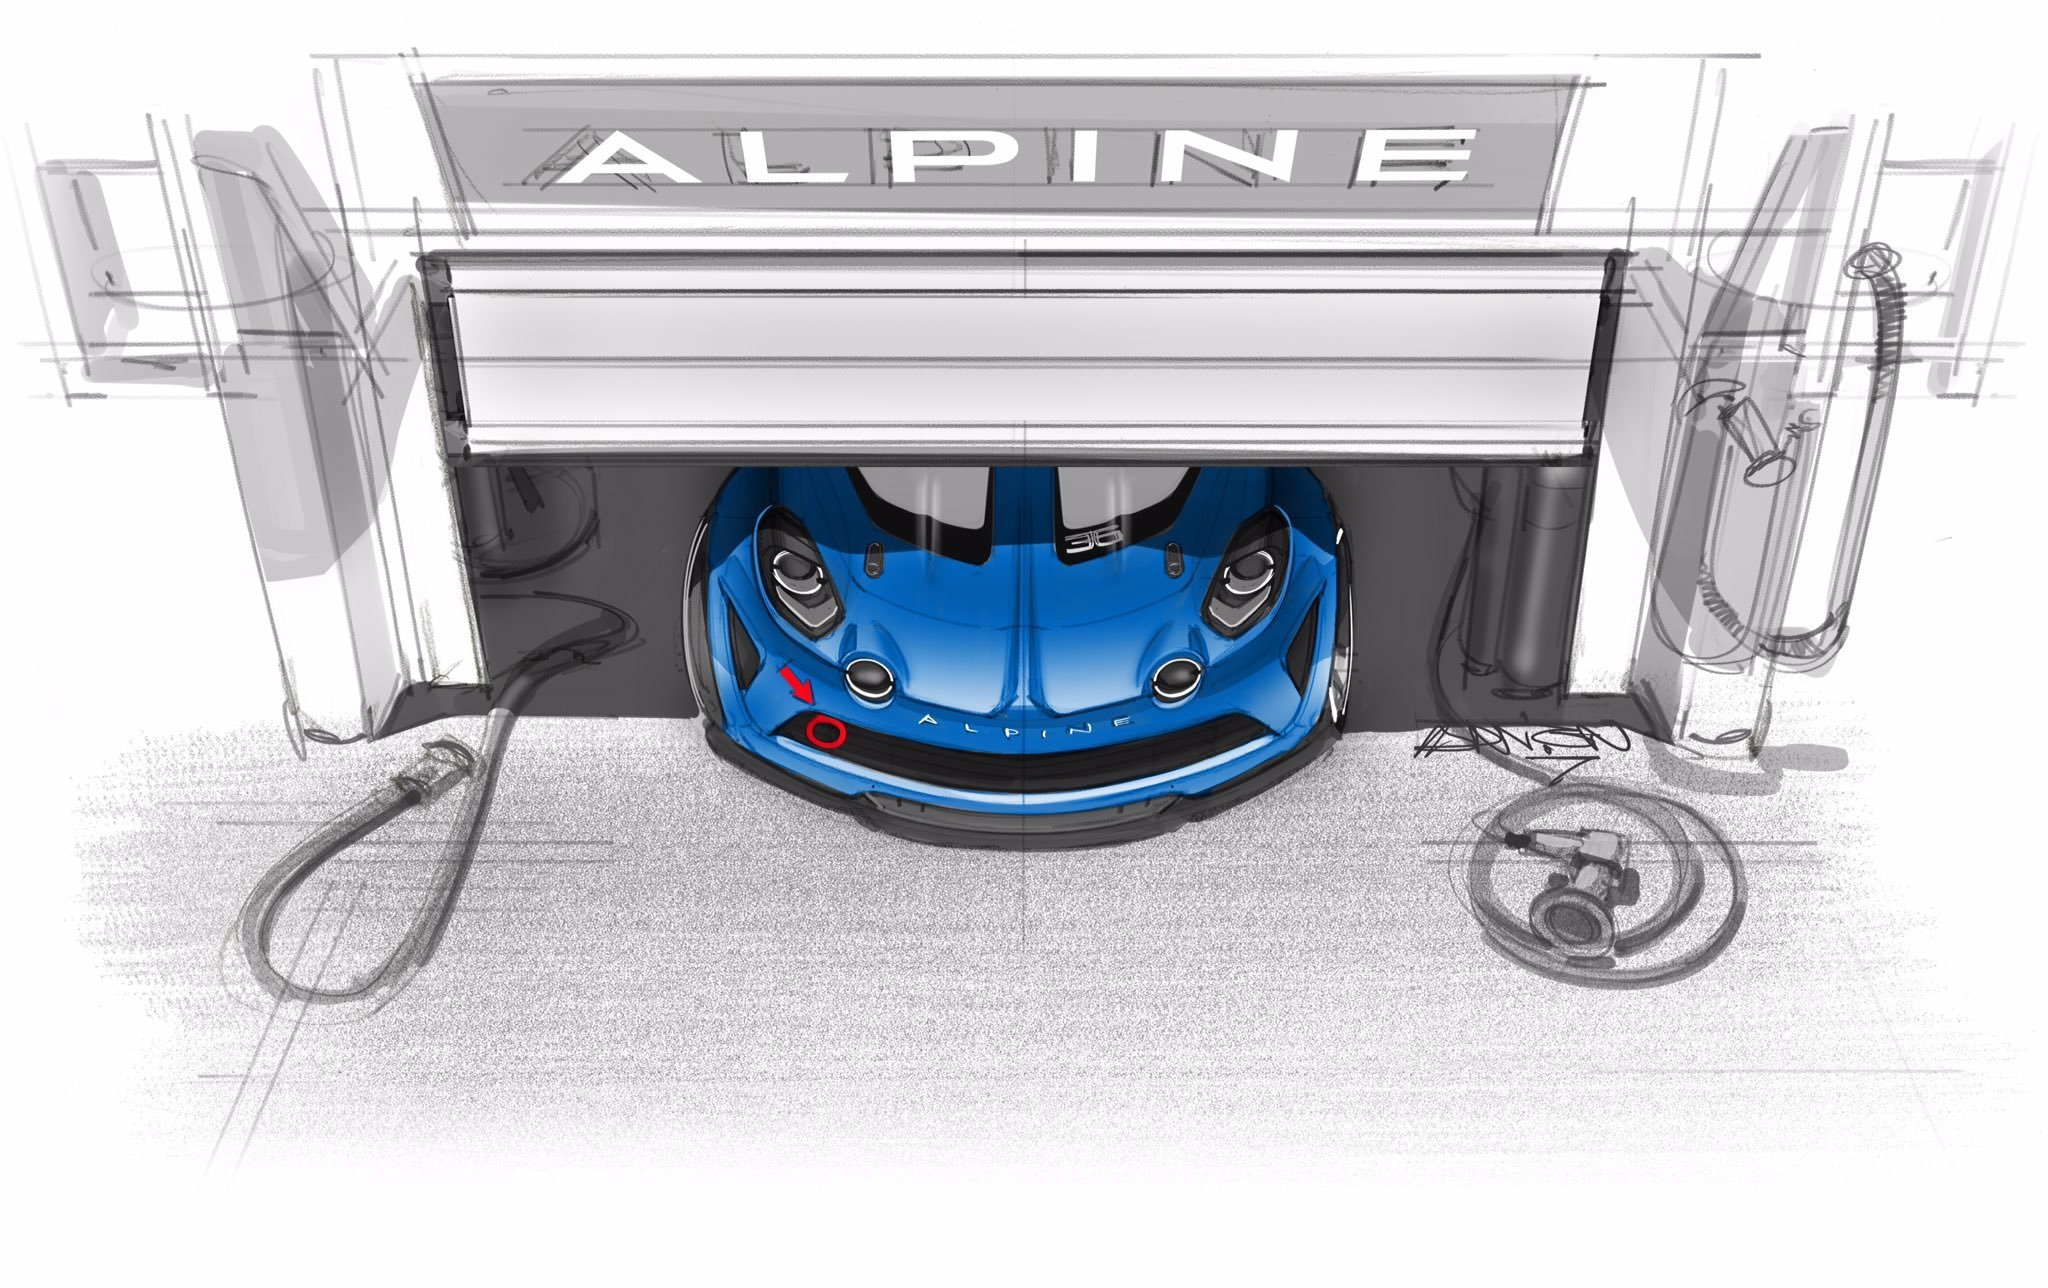 alpine a110 cup une comp tition europ enne d s 2018. Black Bedroom Furniture Sets. Home Design Ideas